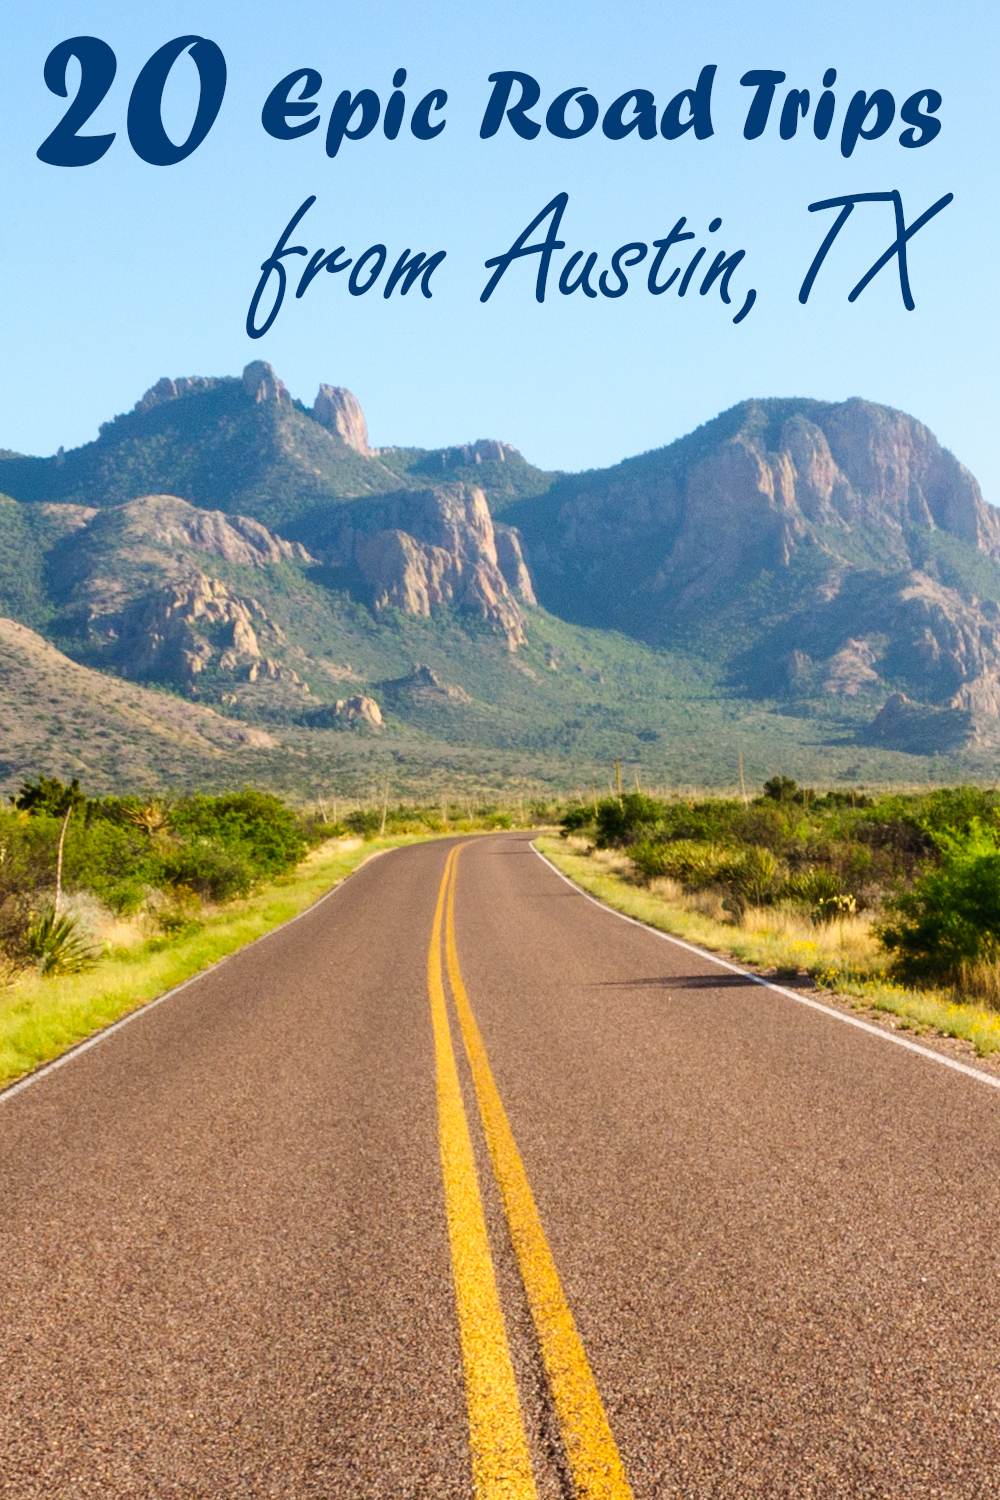 20 Best Road Trips From Austin, Texas - Texas Hill Country, small charming towns, perfect city breaks and amazing nature to explore.